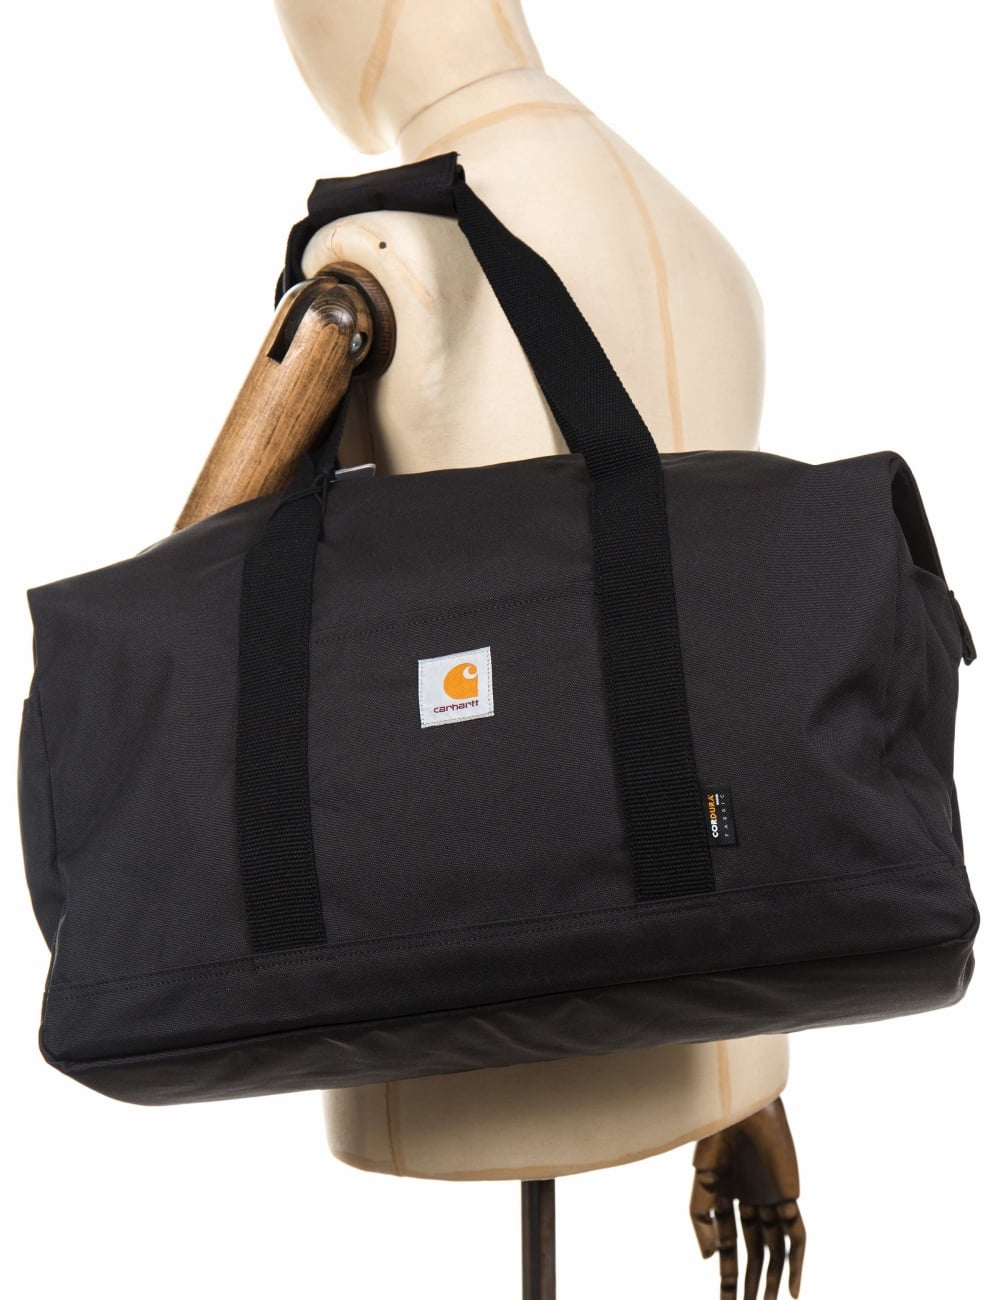 Carhartt WIP Watch Sports Holdall Bag - Black Black - Accessories ... cebe39d7ab992